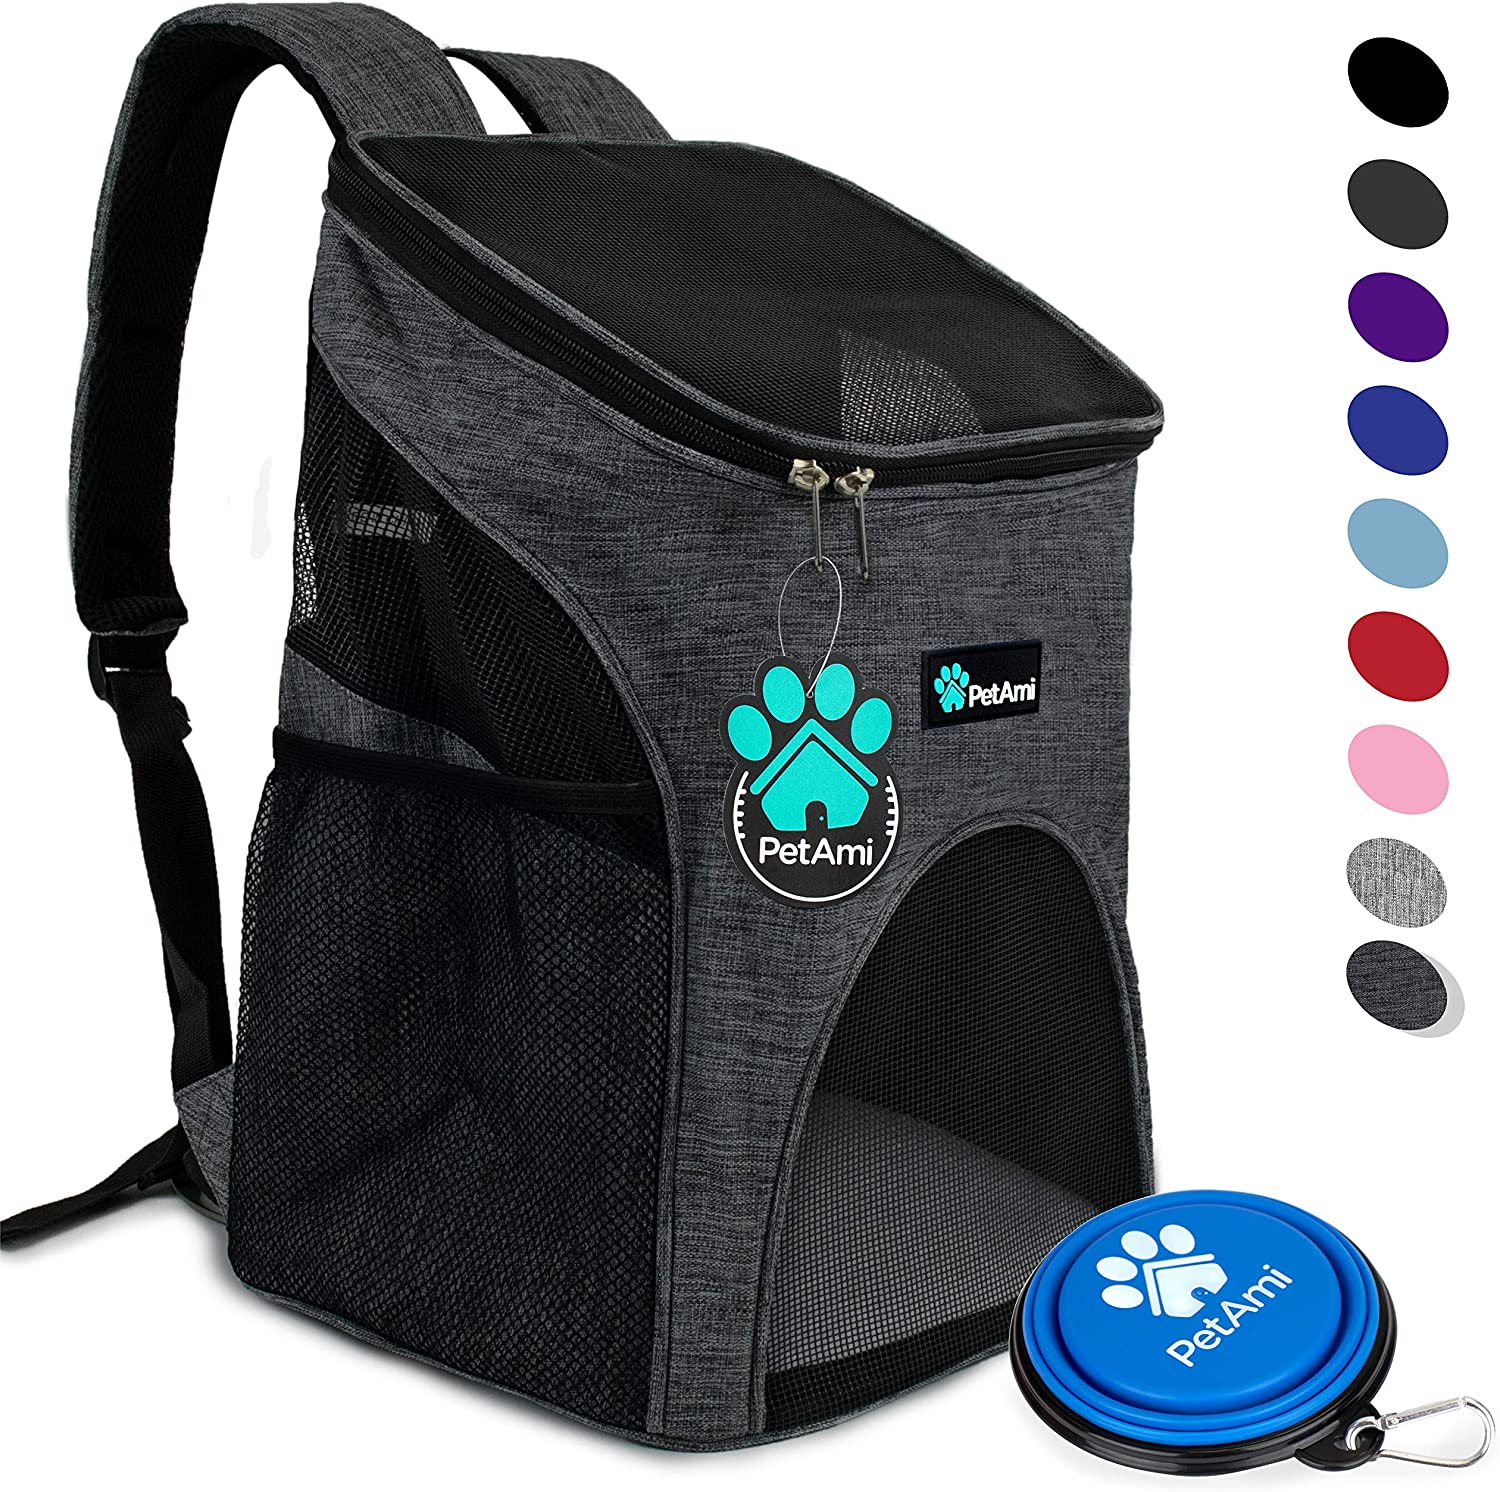 PetAmi Premium Pet Carrier Backpack for Small Cats and Dogs   Ventilated Design, Safety Strap, Buckle Support   Designed for Travel, Hiking & Outdoor Use (Charcoal)